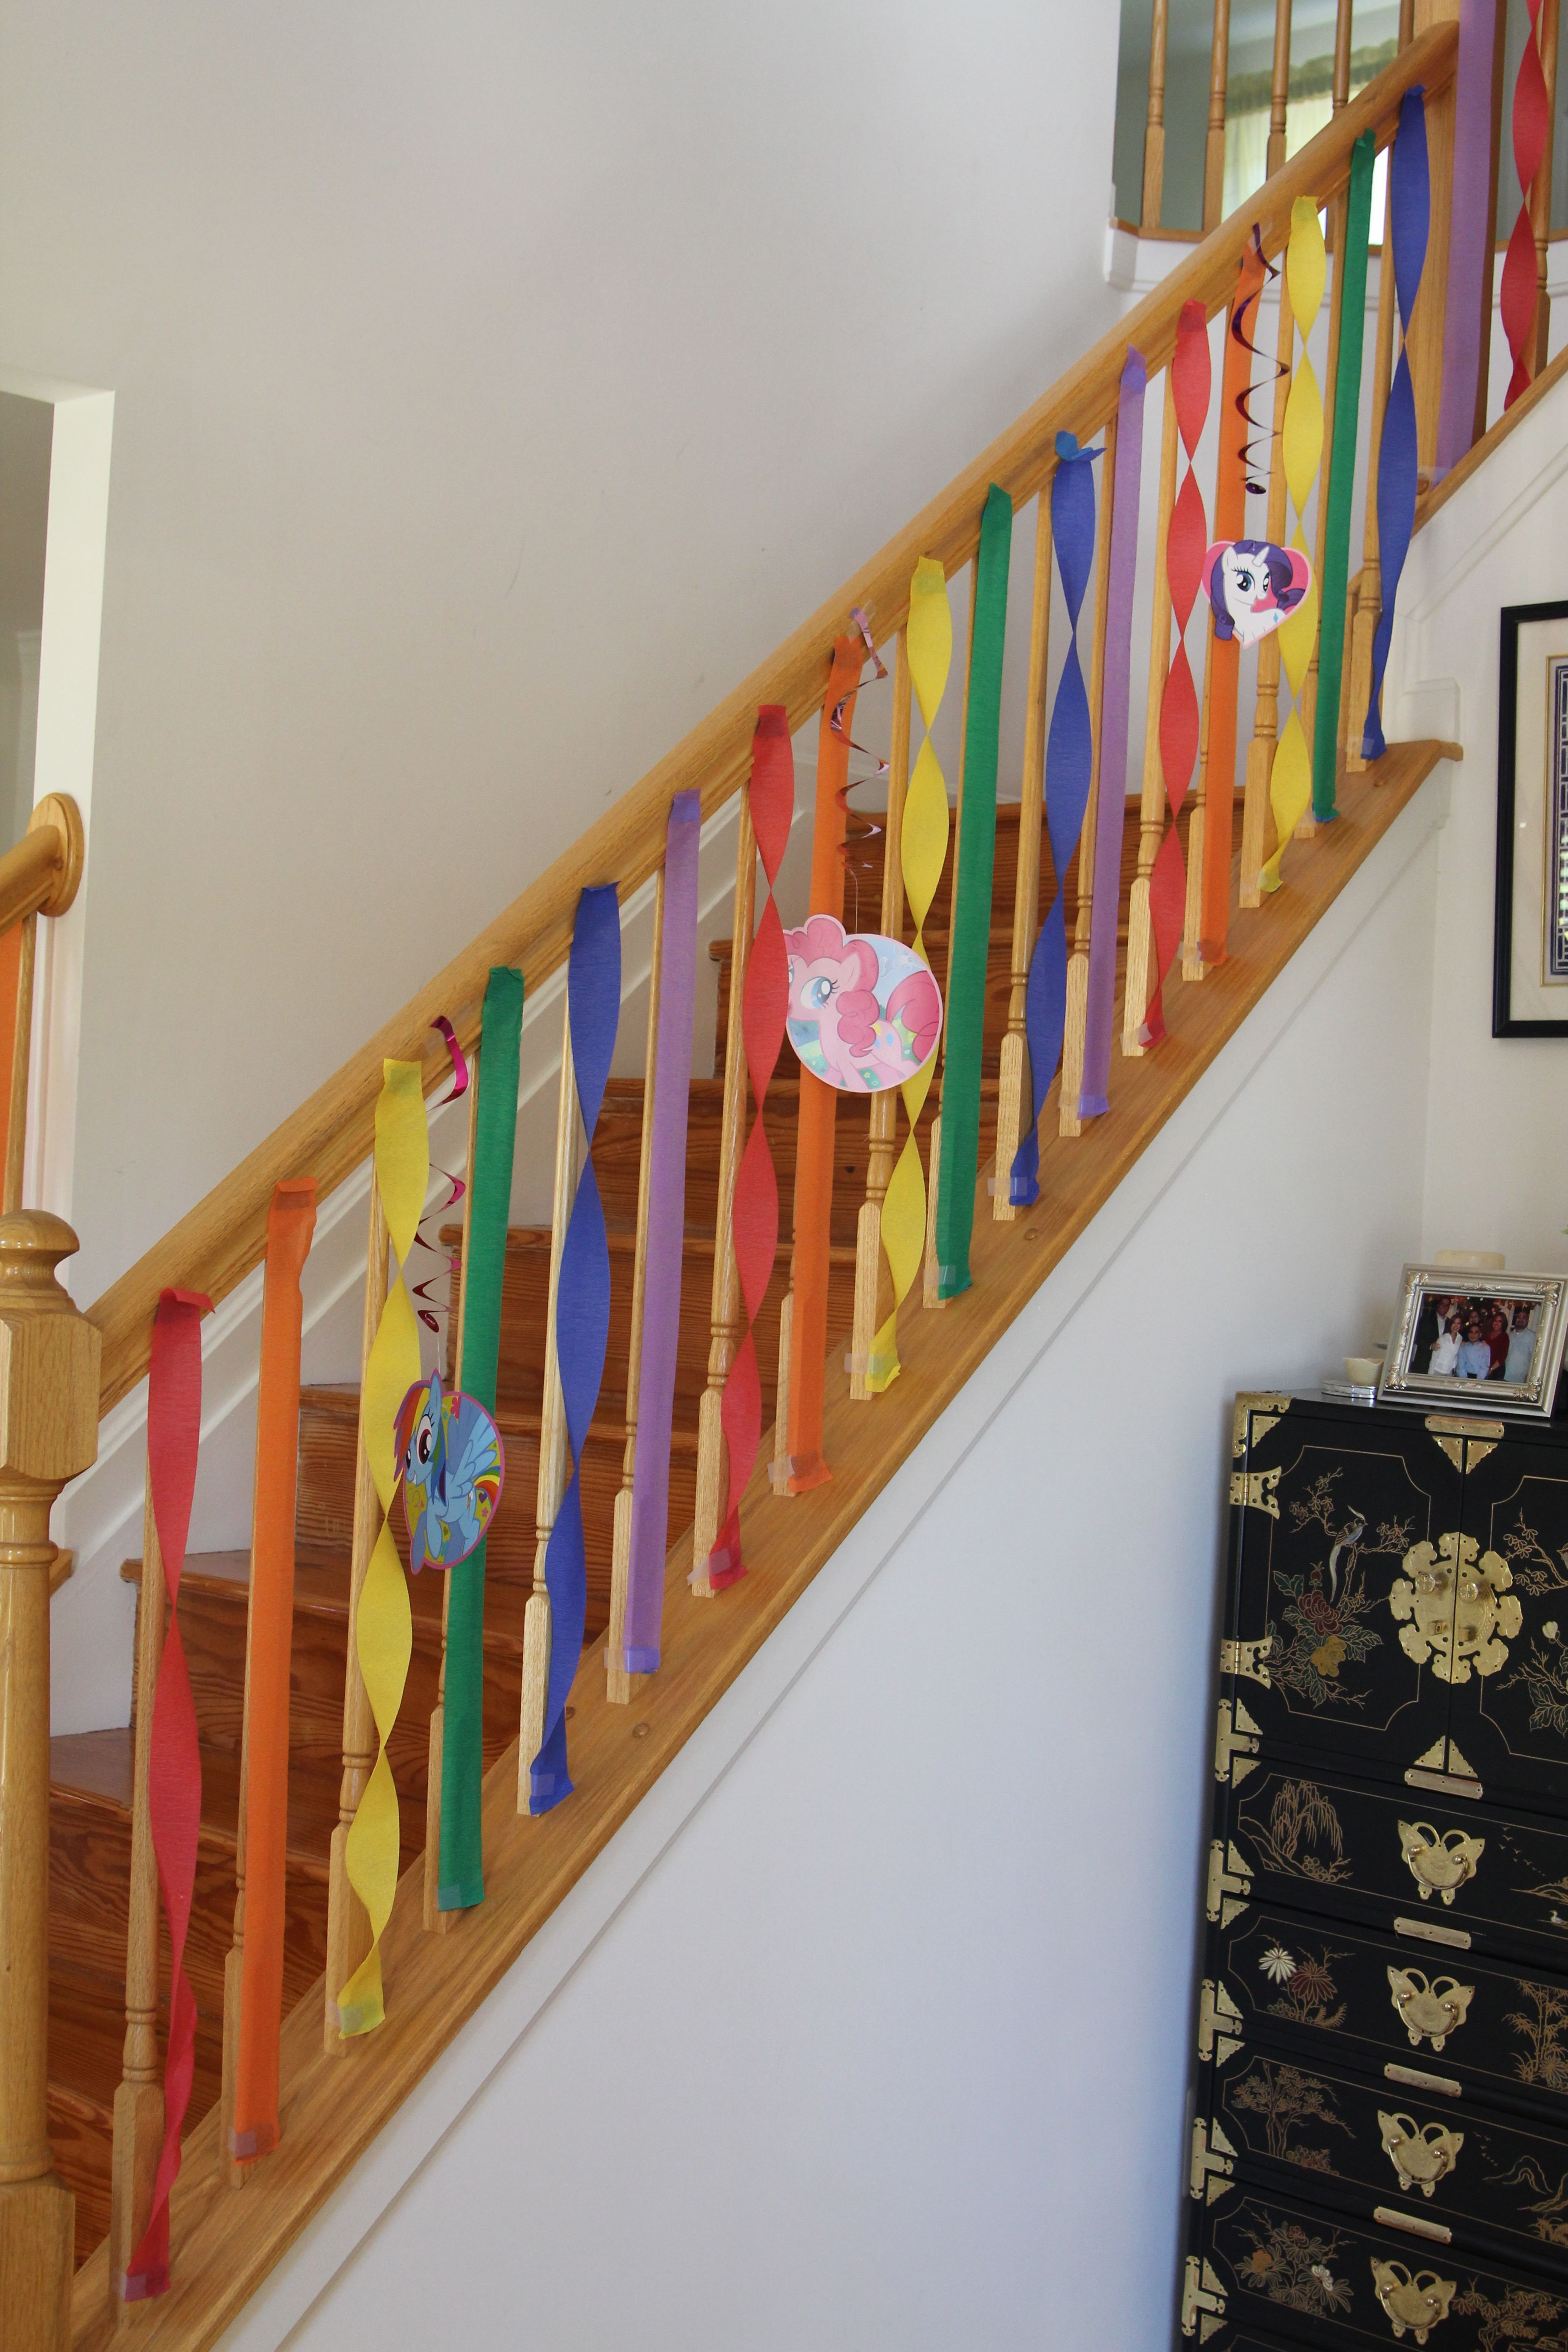 Party Decorating Ideas With Streamers gracie's my little pony rainbow birthday party - streamer